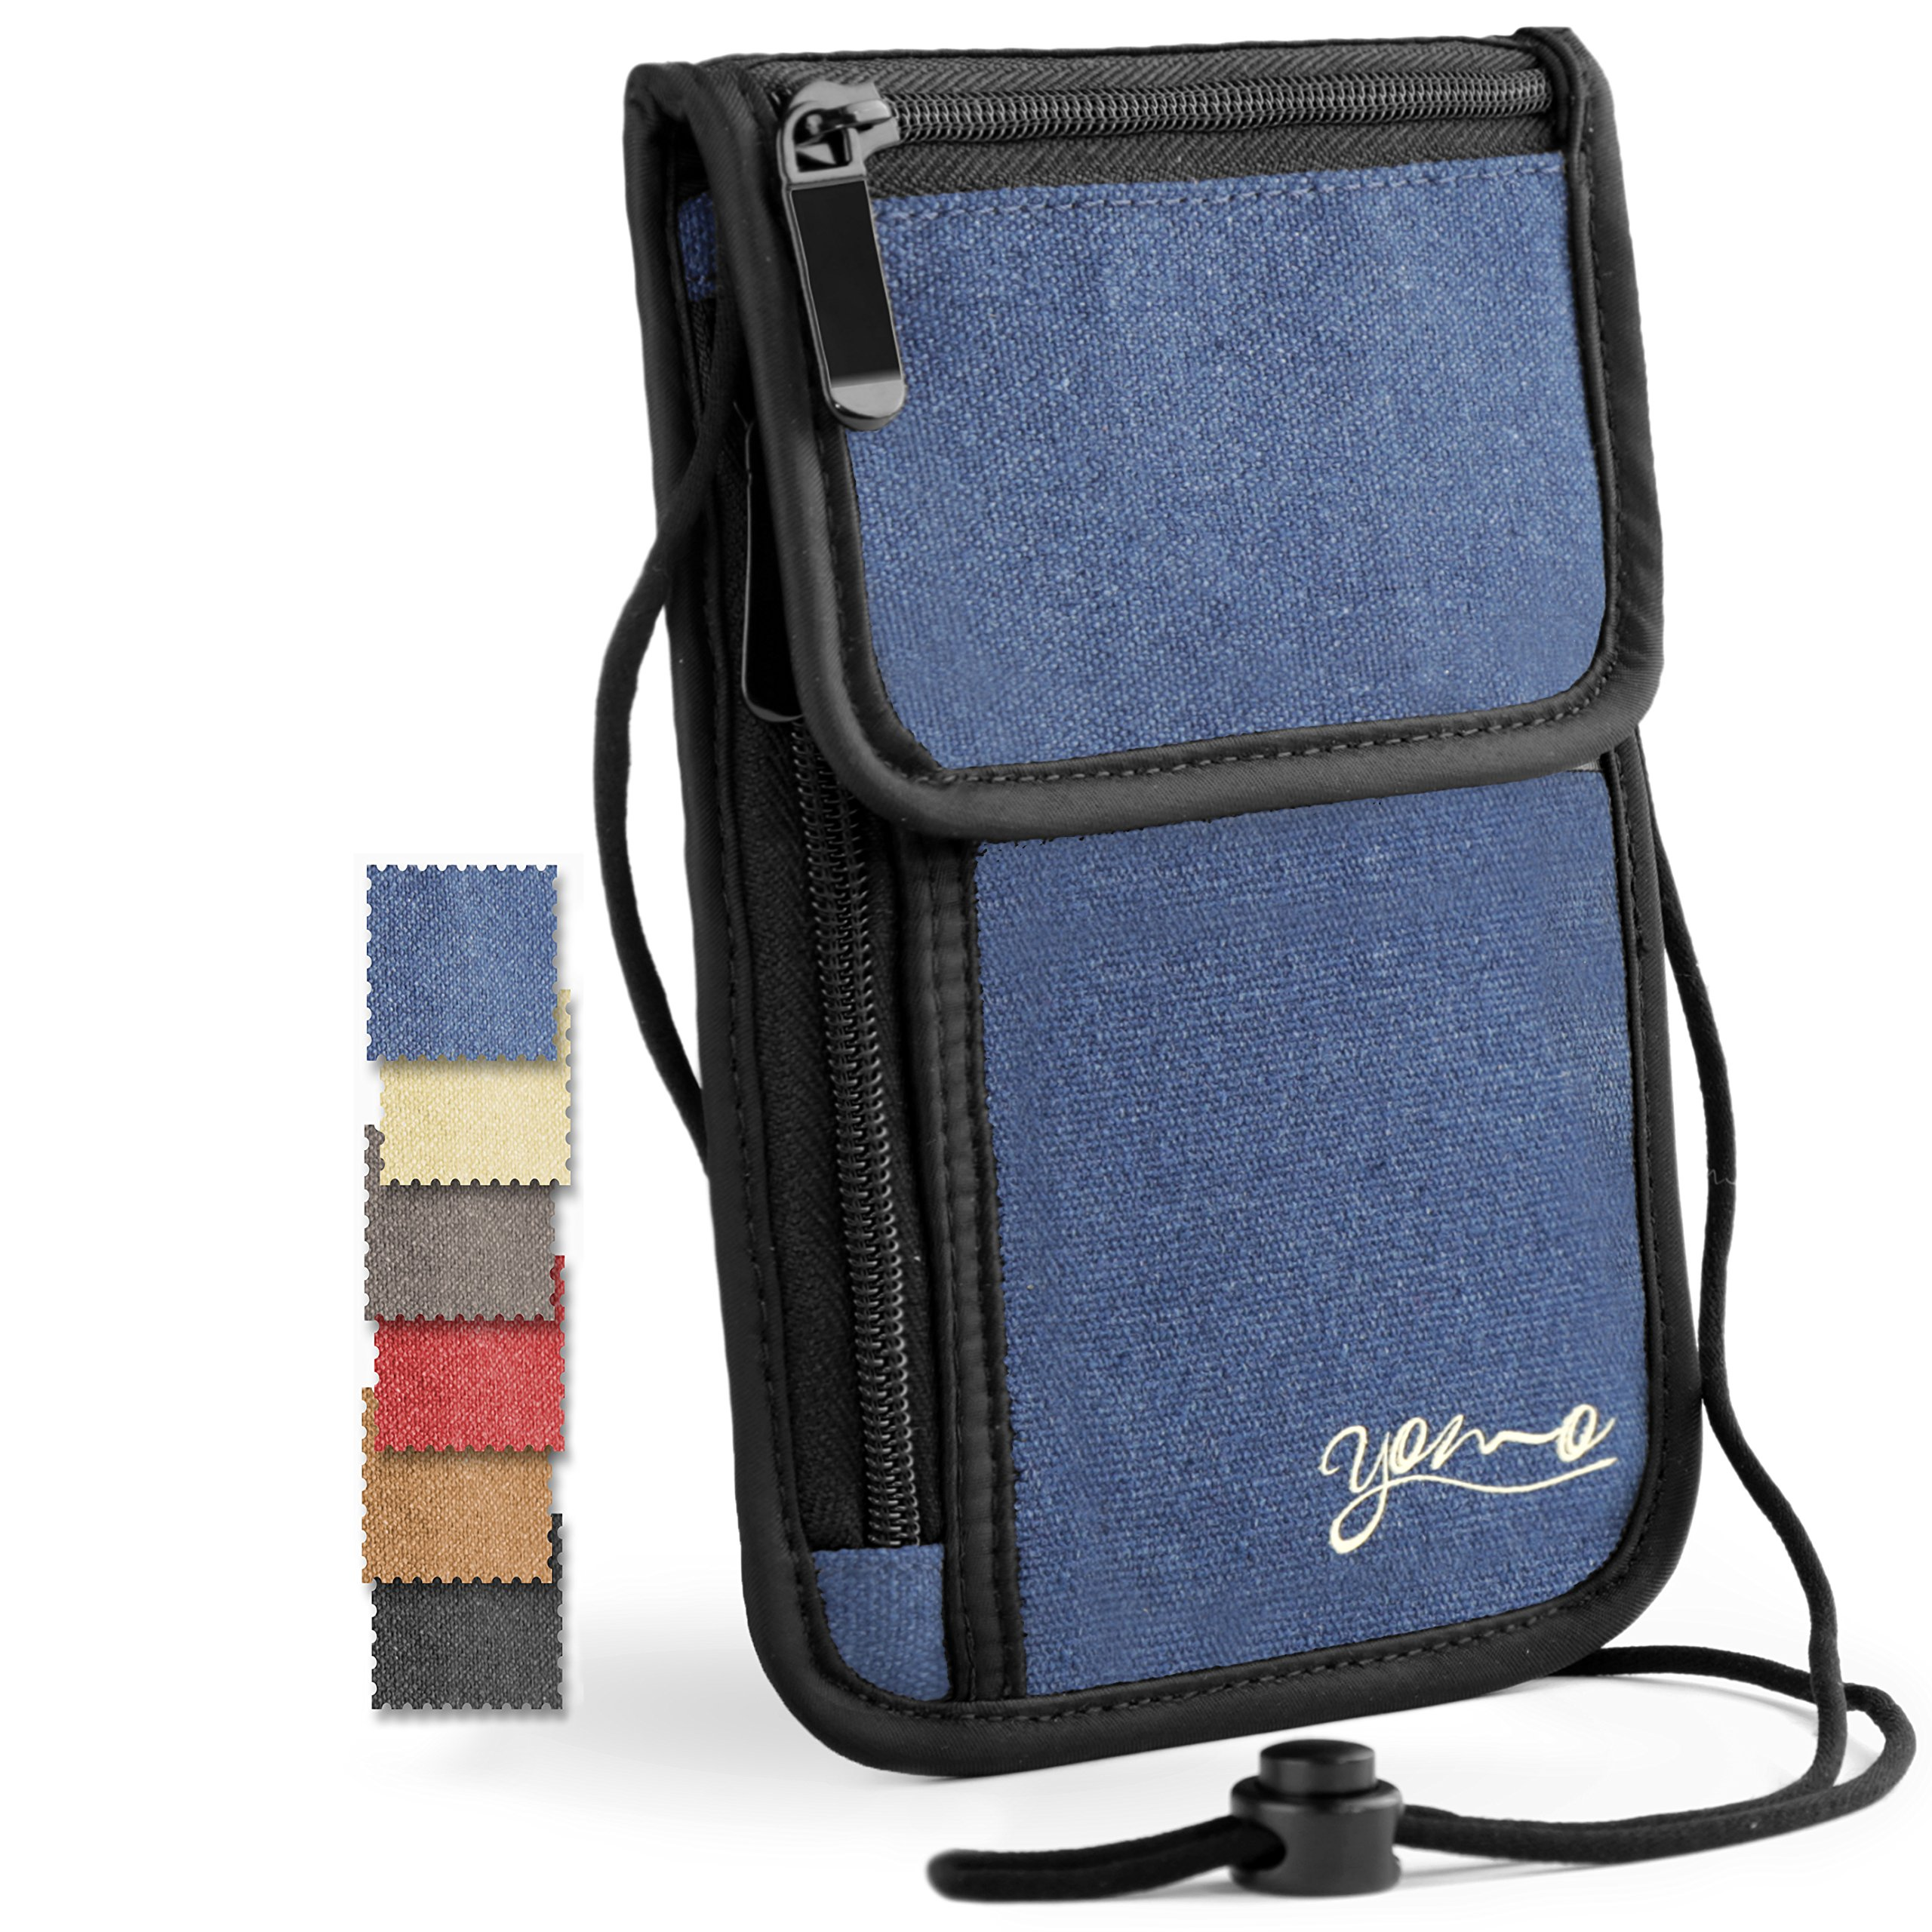 Passport Holder- by YOMO. RFID Safe. The Classic Neck Travel Wallet. (Basic Blue)